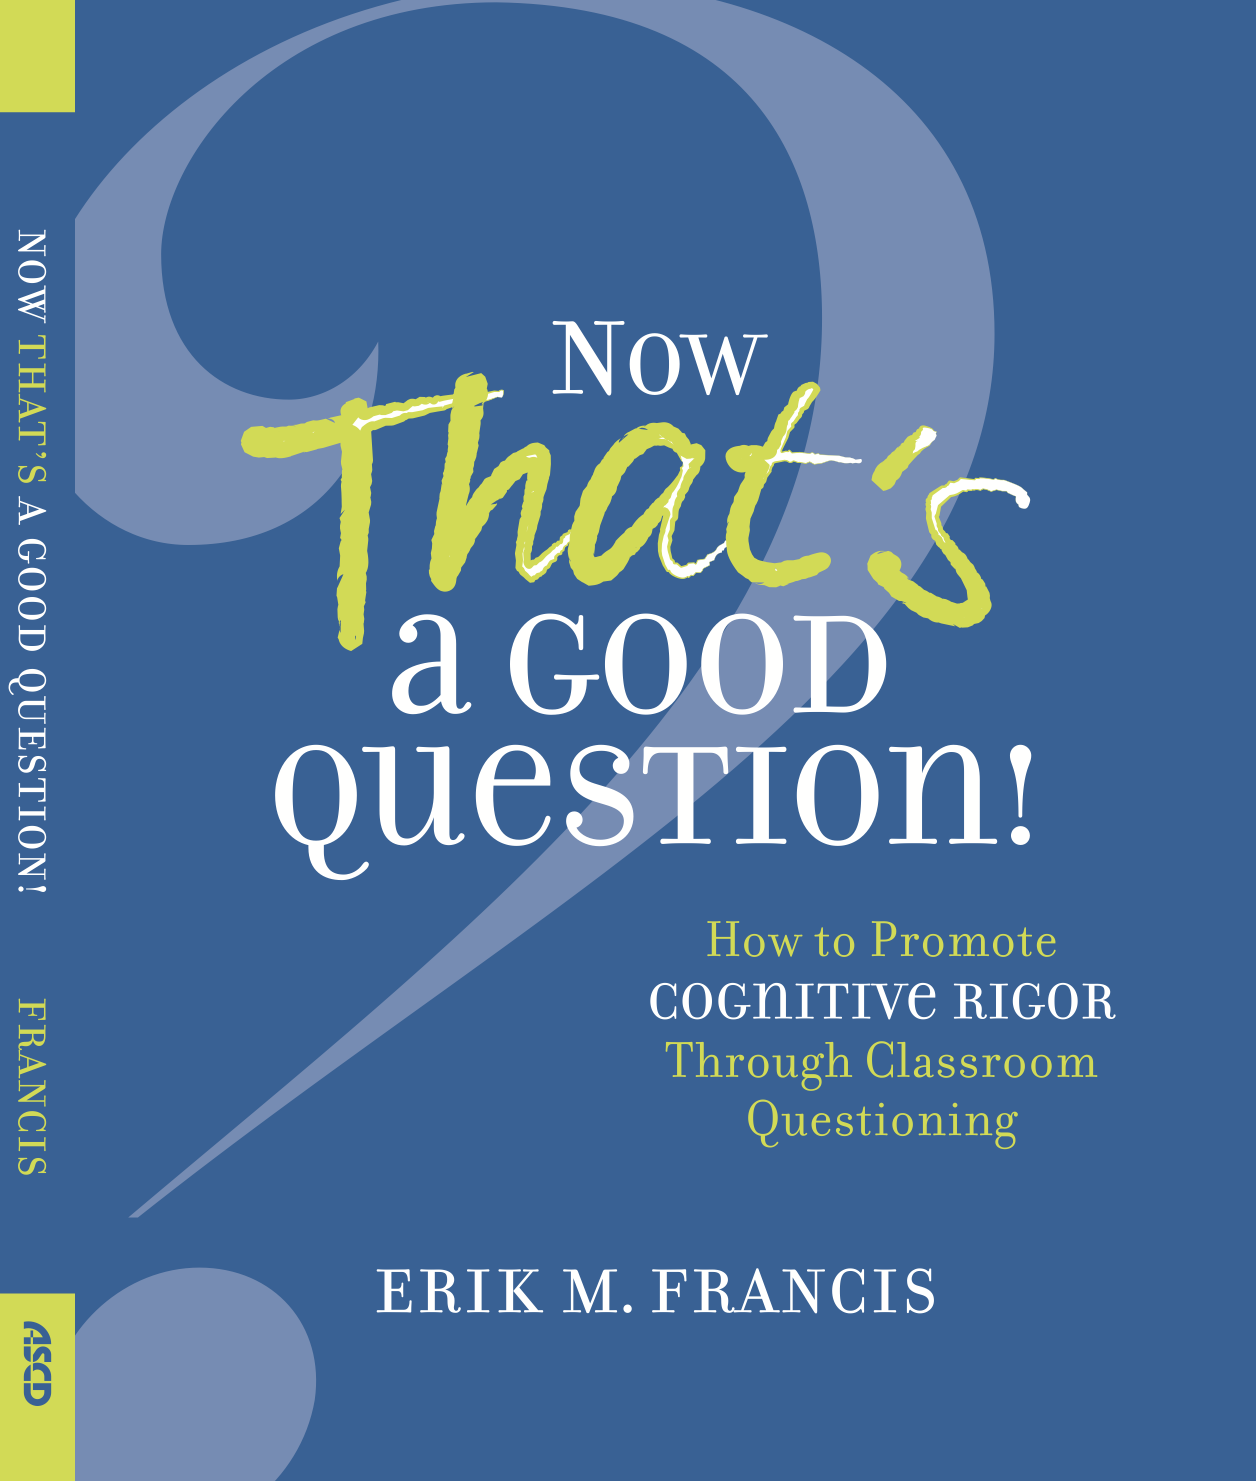 NOW AVAILABLE FOR PRE-ORDER FROM ASCD!